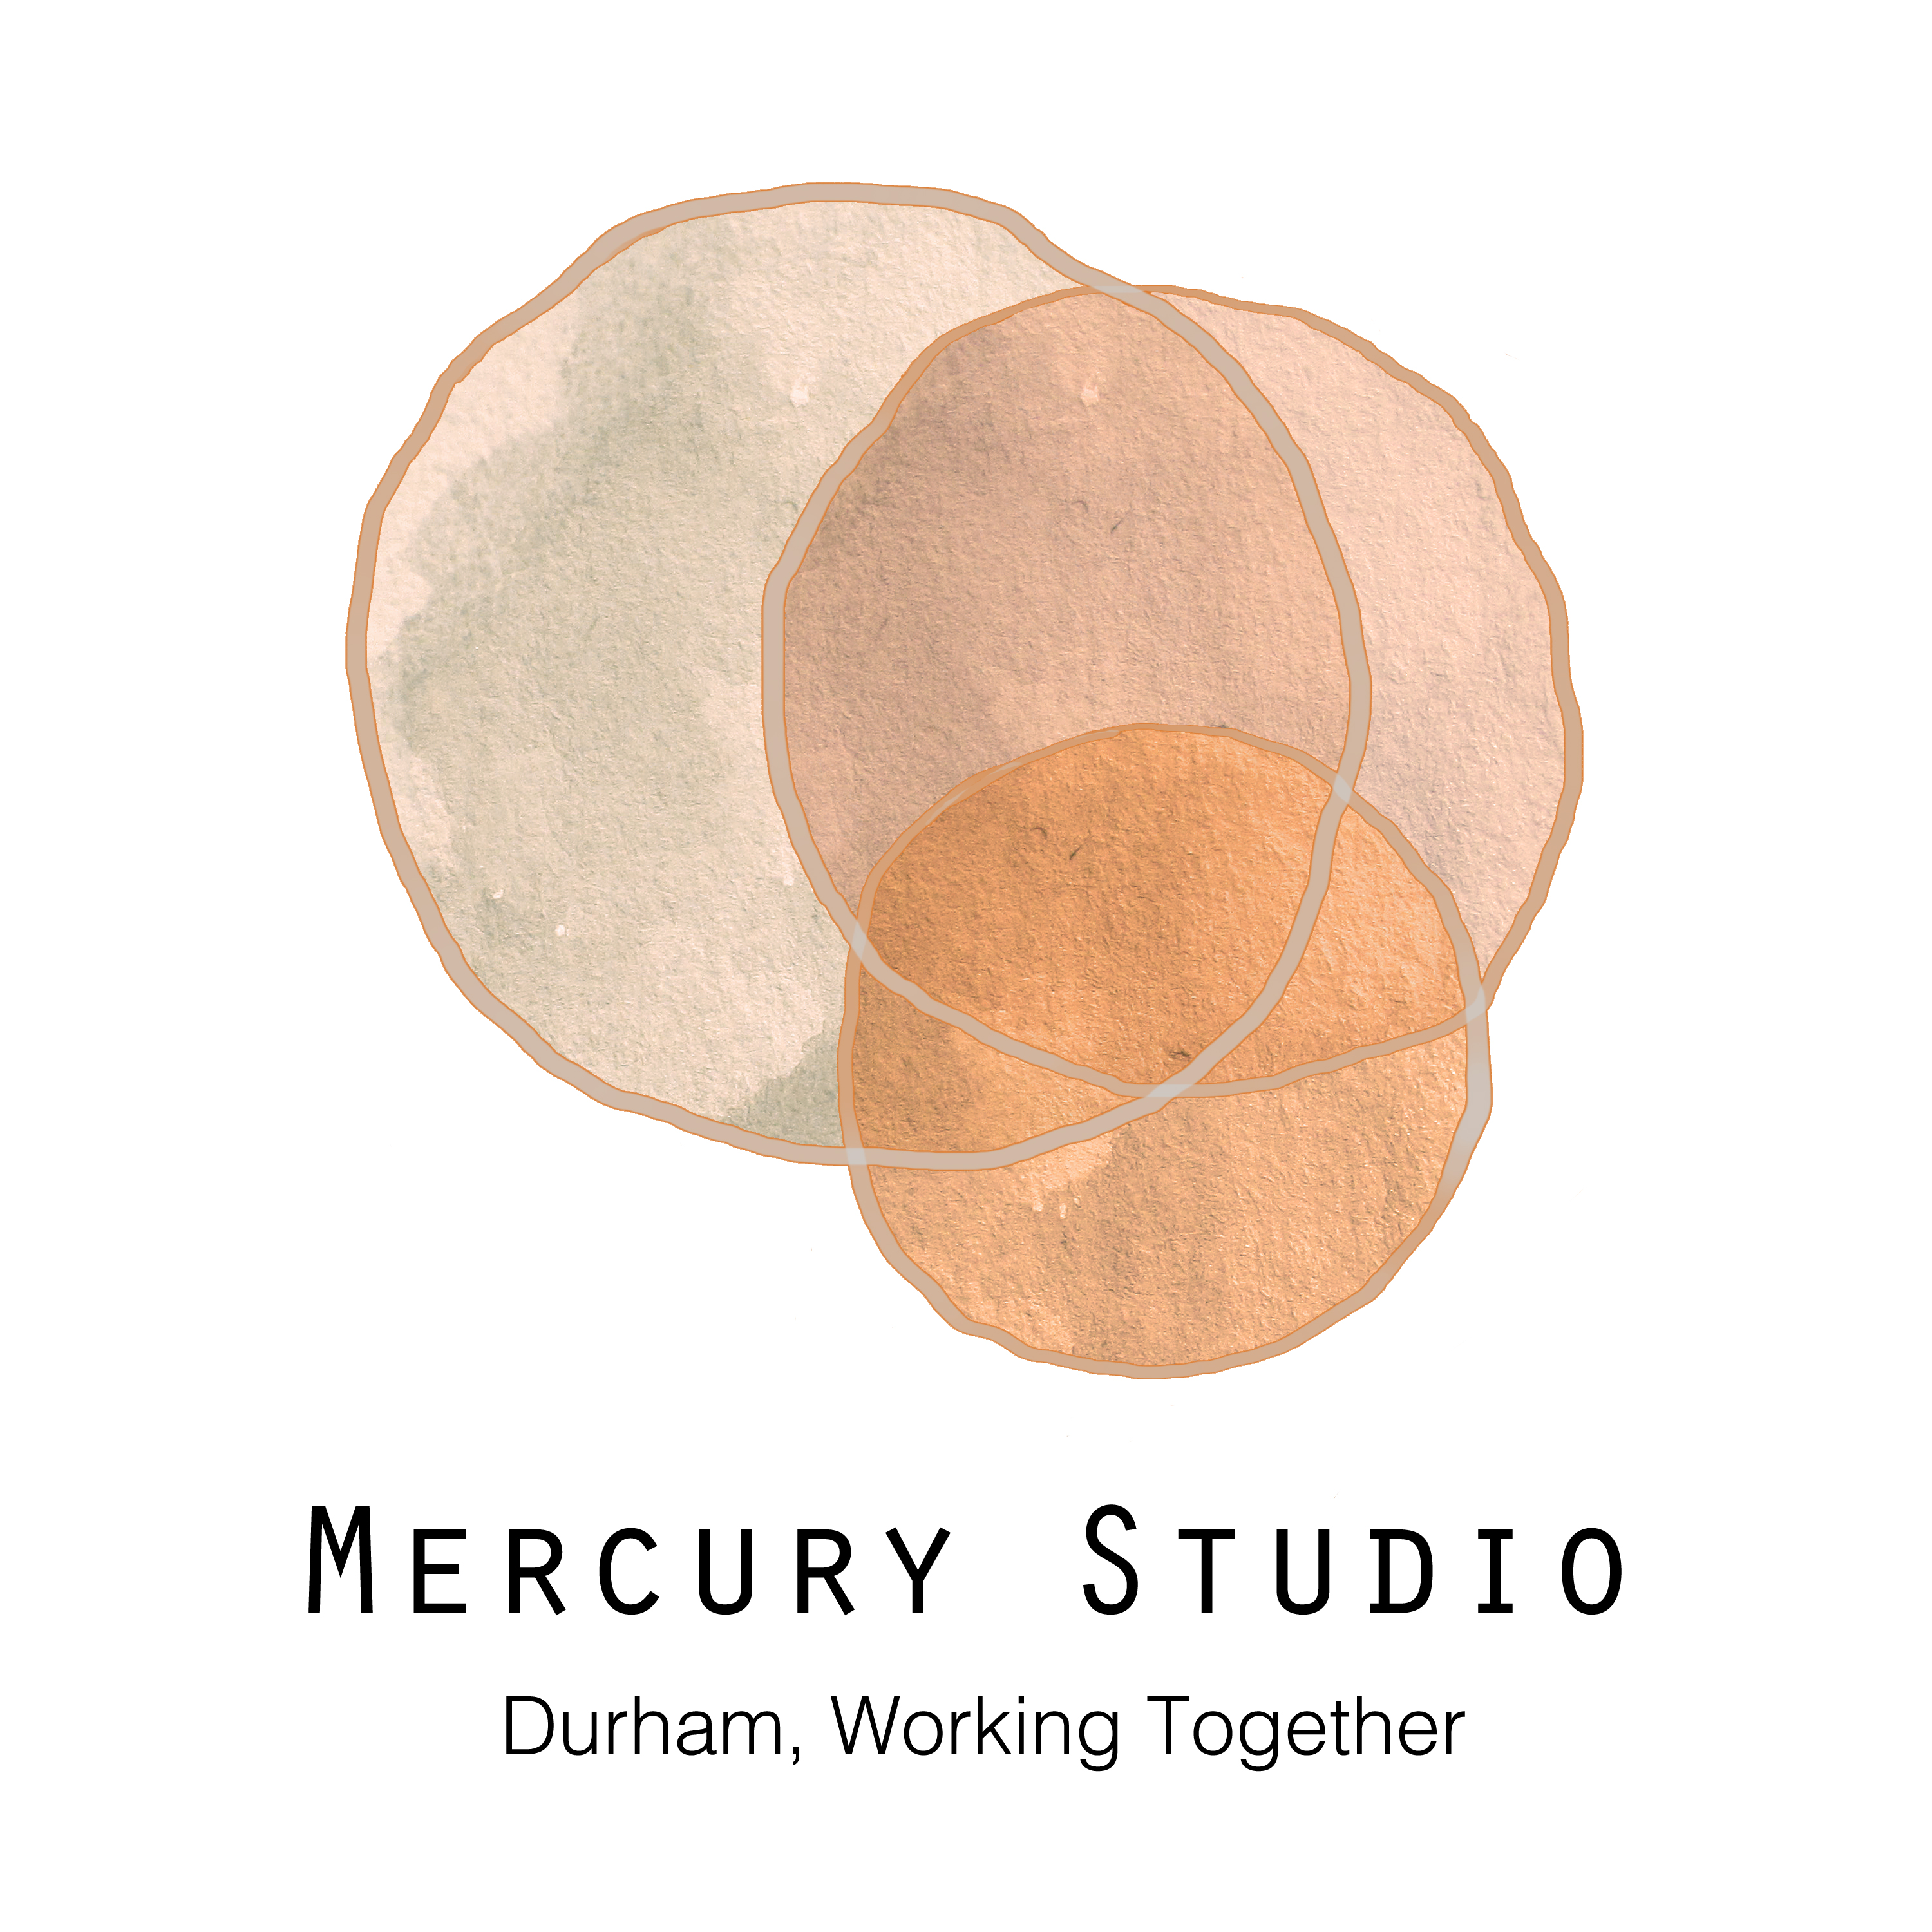 12 Weeks Desk Space at Mercury Studio 12 Weeks Desk Space at Mercury Studio. Mercury studio is a home for creative entrepreneurs and businesses. They aim to make every individual feel heard - valued - and supported as they pursue their passion. They do this through providing diverse work - retail - and event space - as well as hosting a variety of community-building events. 825.00